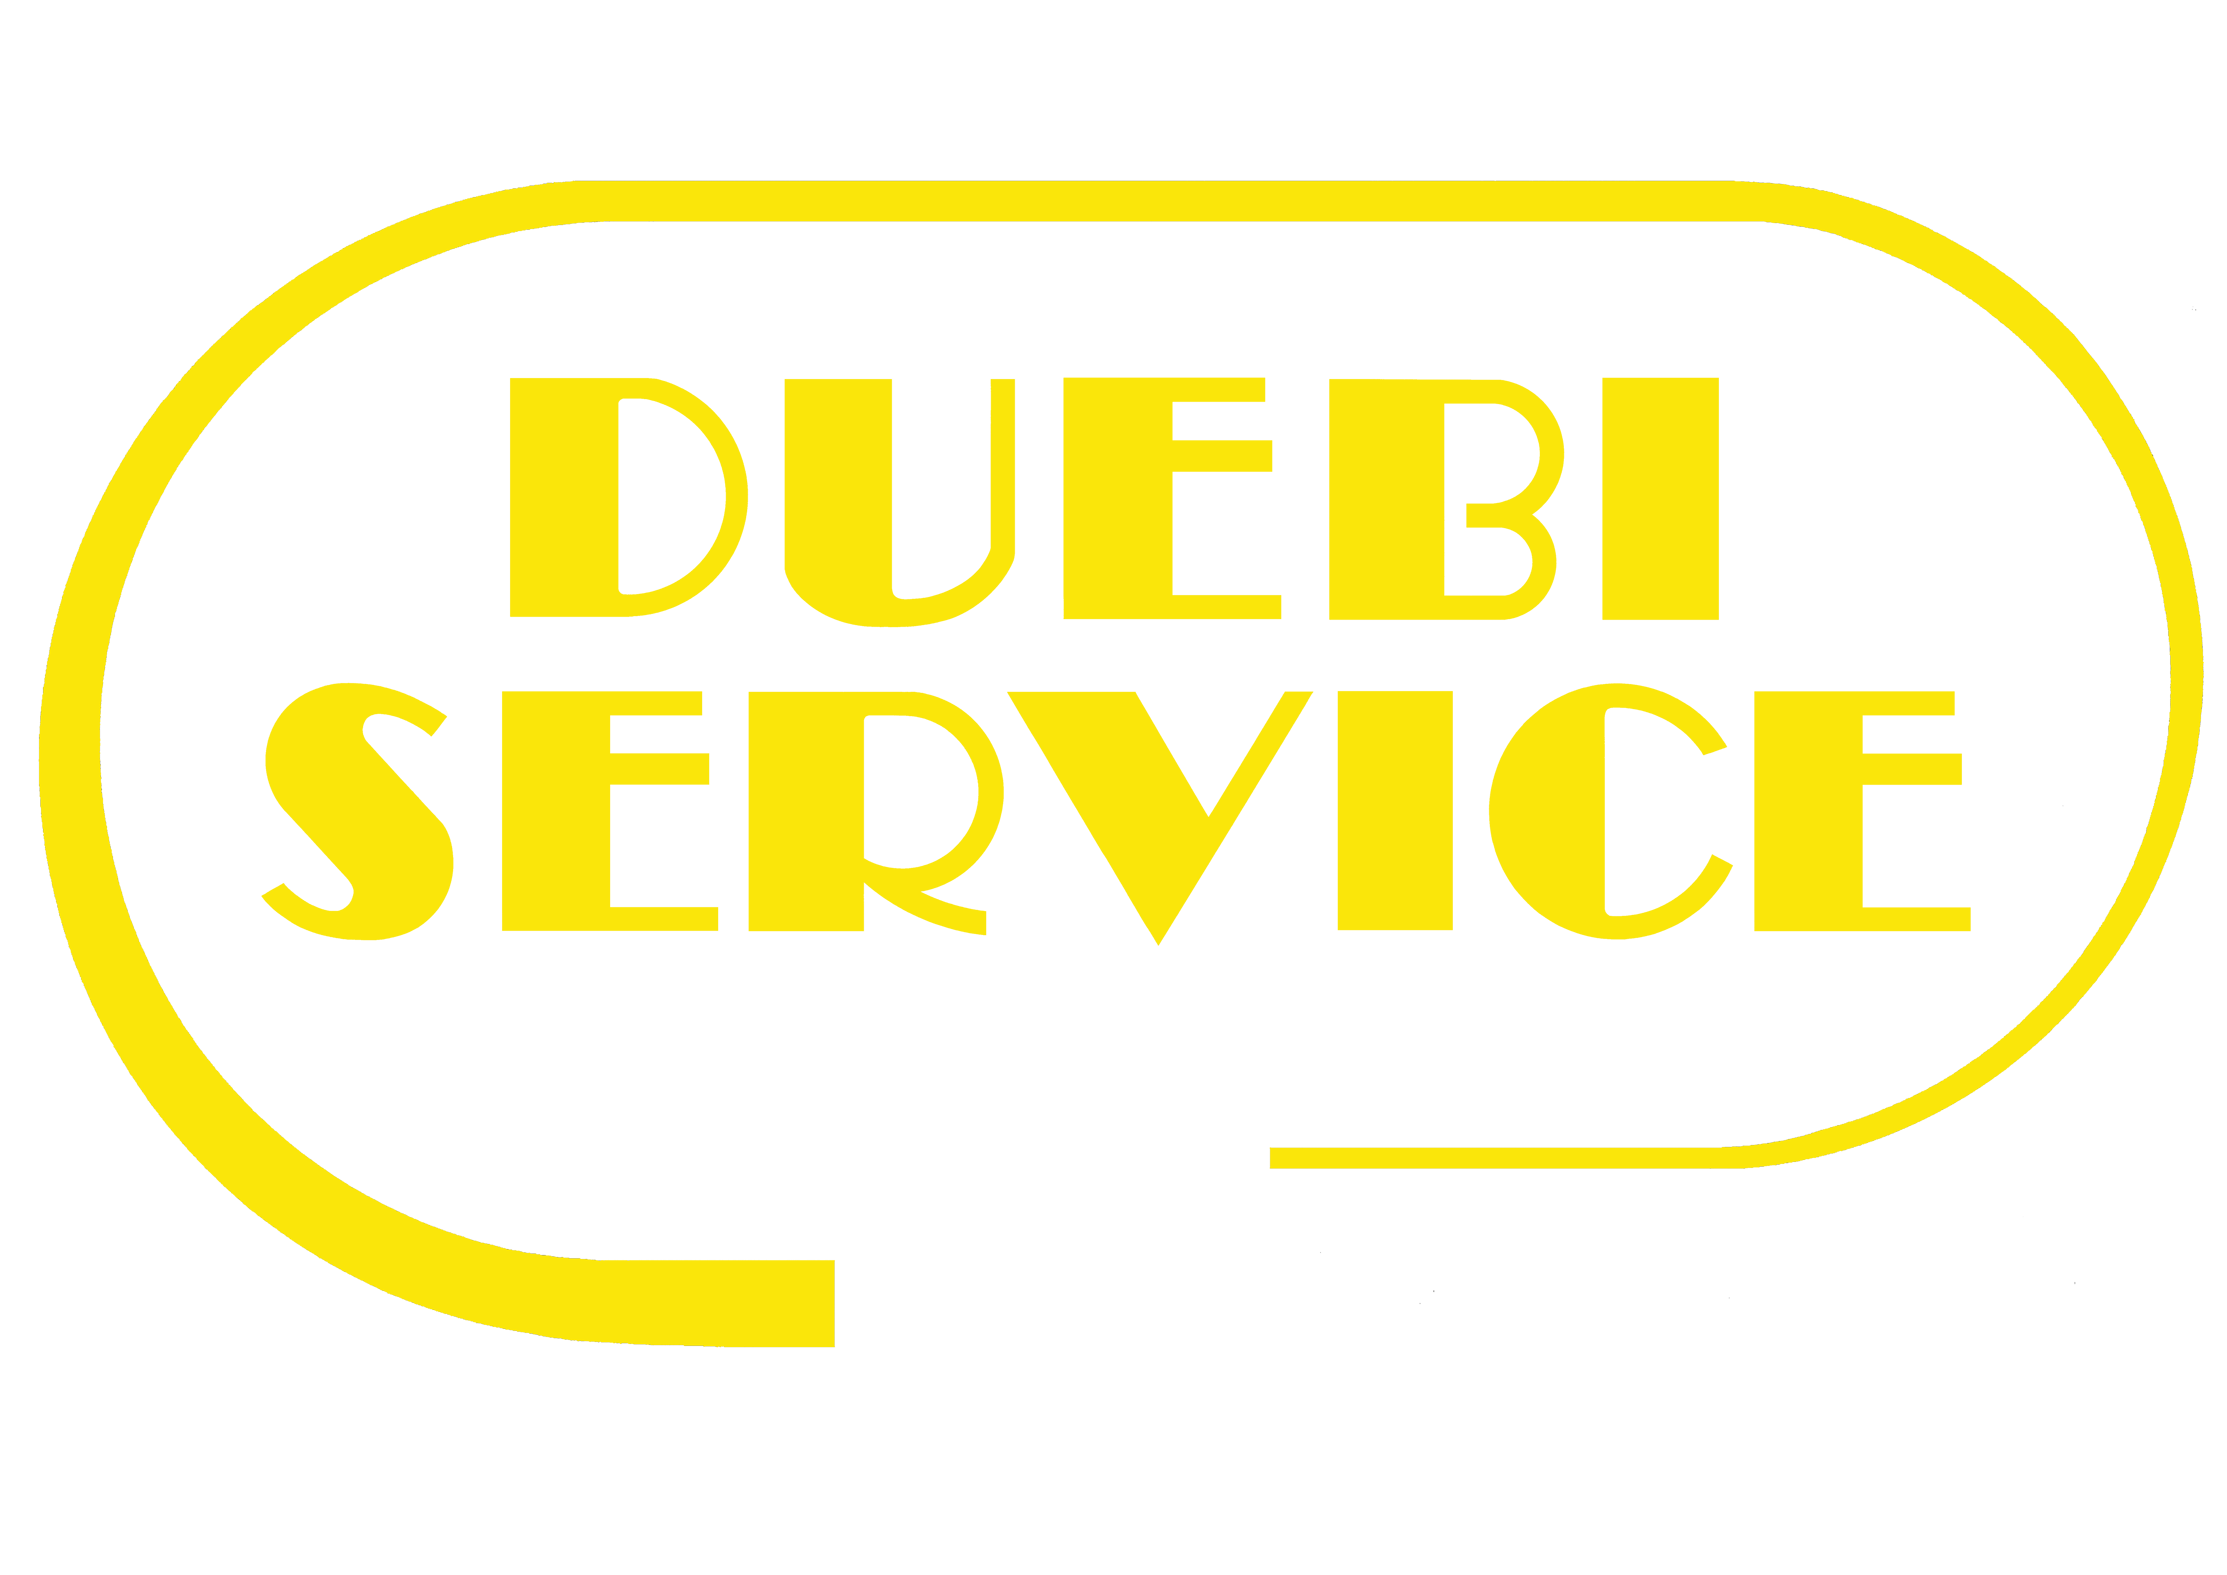 duebi website